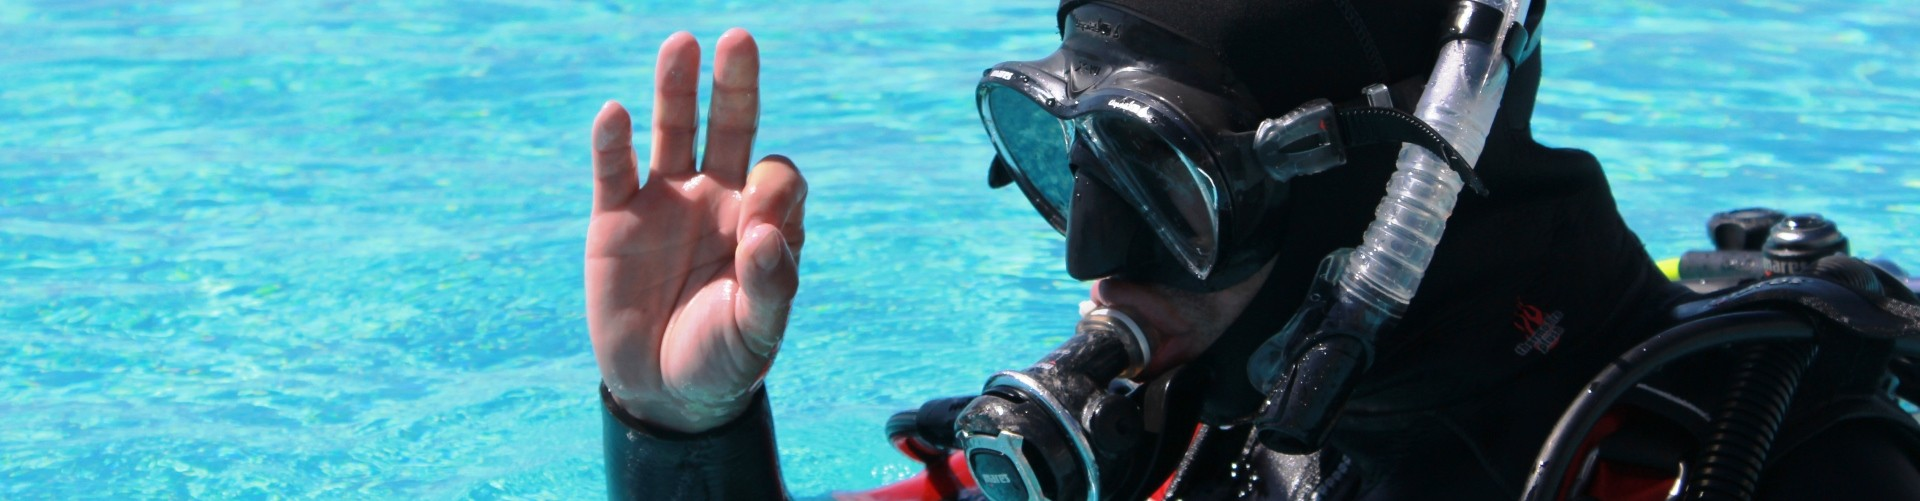 Scuba Diving Courses in Madeira Island